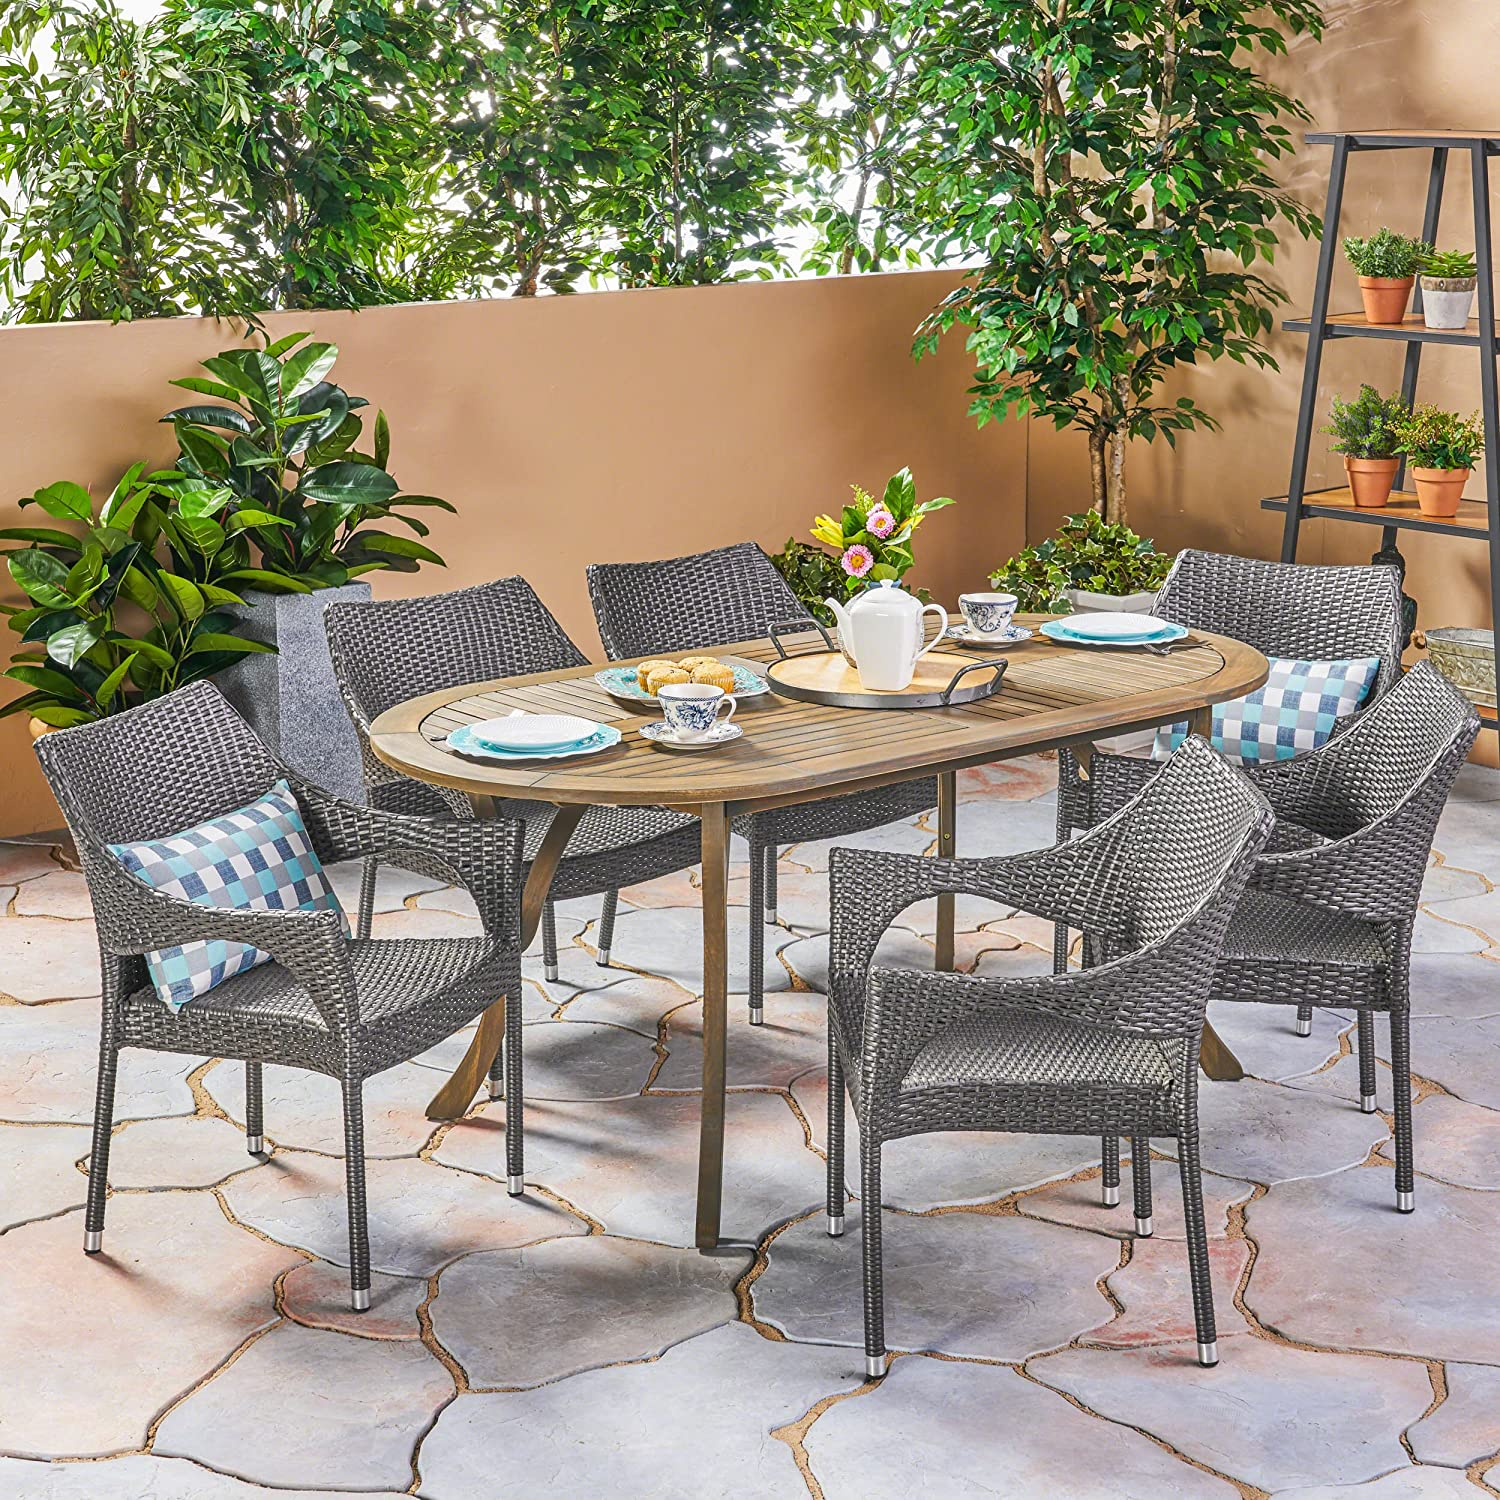 Amazon com great deal furniture harris outdoor 7 piece wood and wicker dining set gray finish and gray garden outdoor